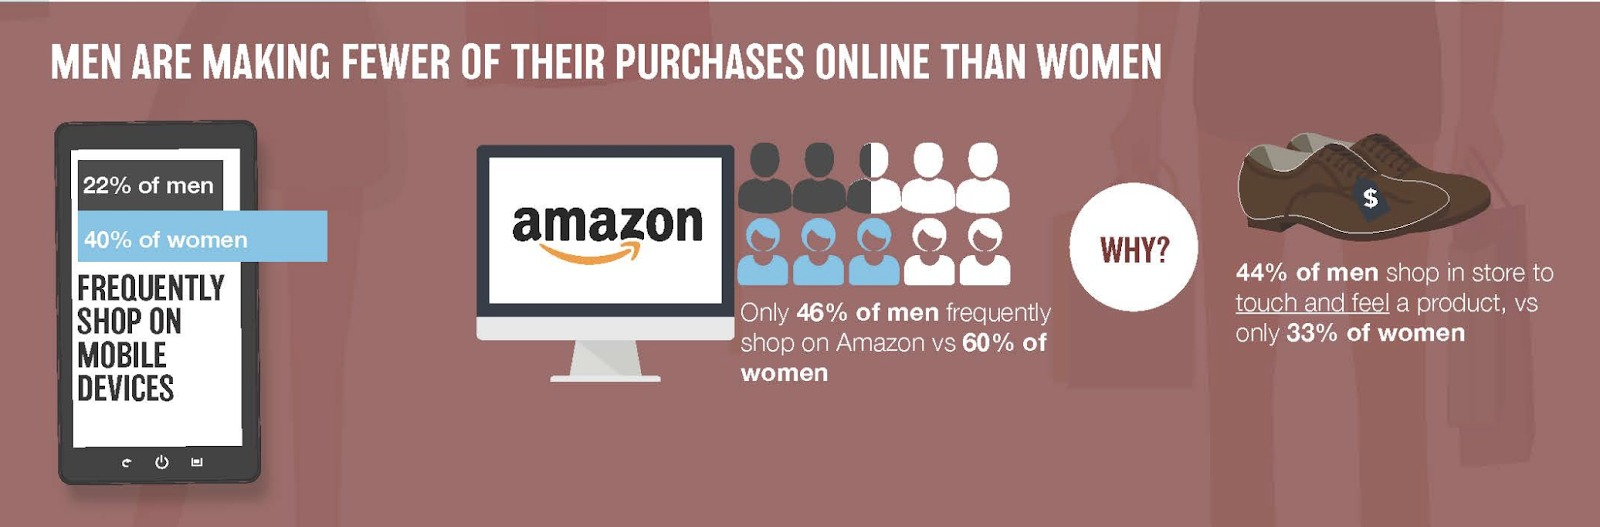 women shop online more 1